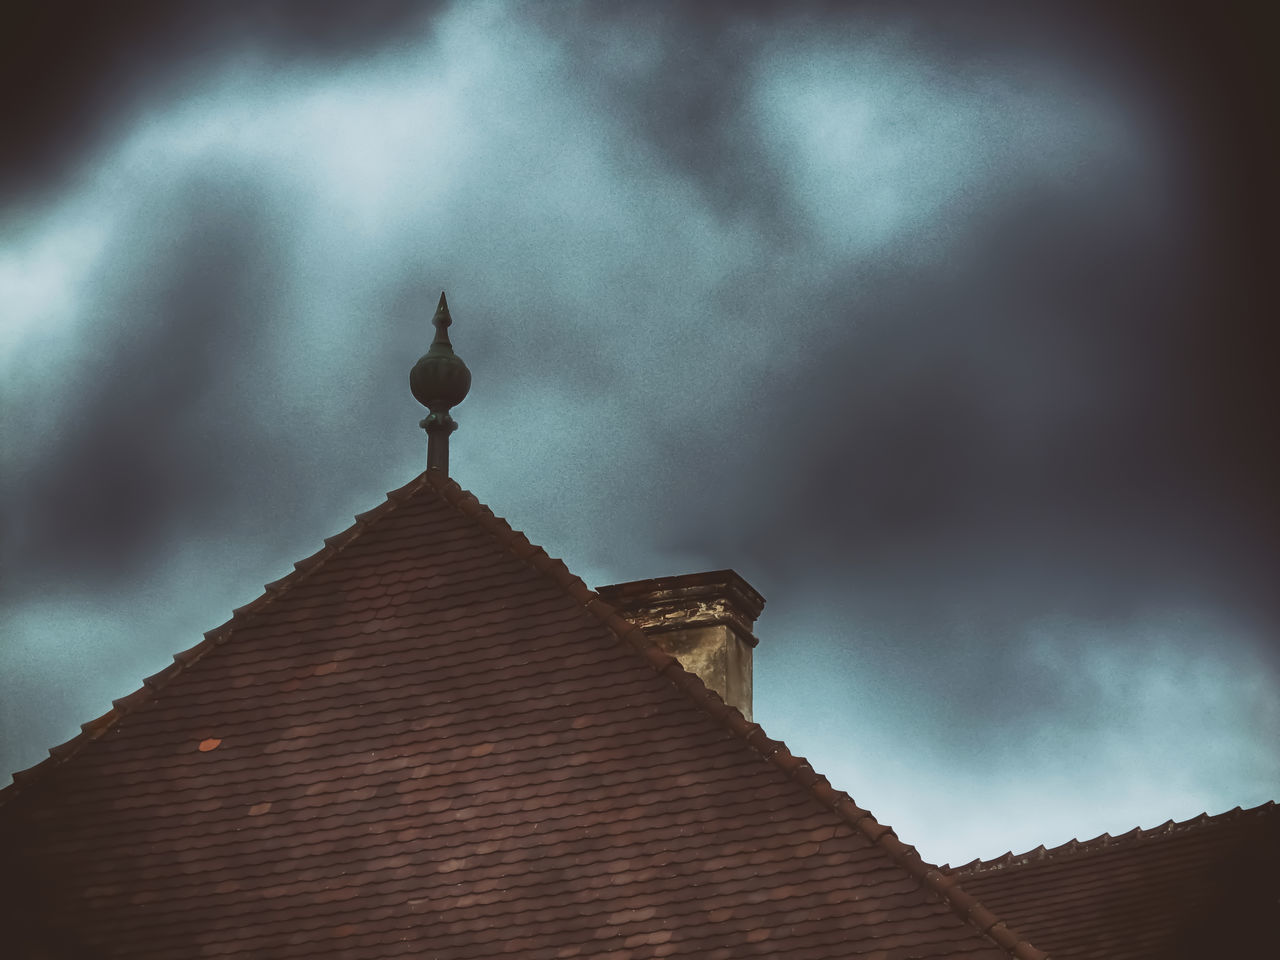 LOW ANGLE VIEW OF CROSS ON ROOF AGAINST SKY